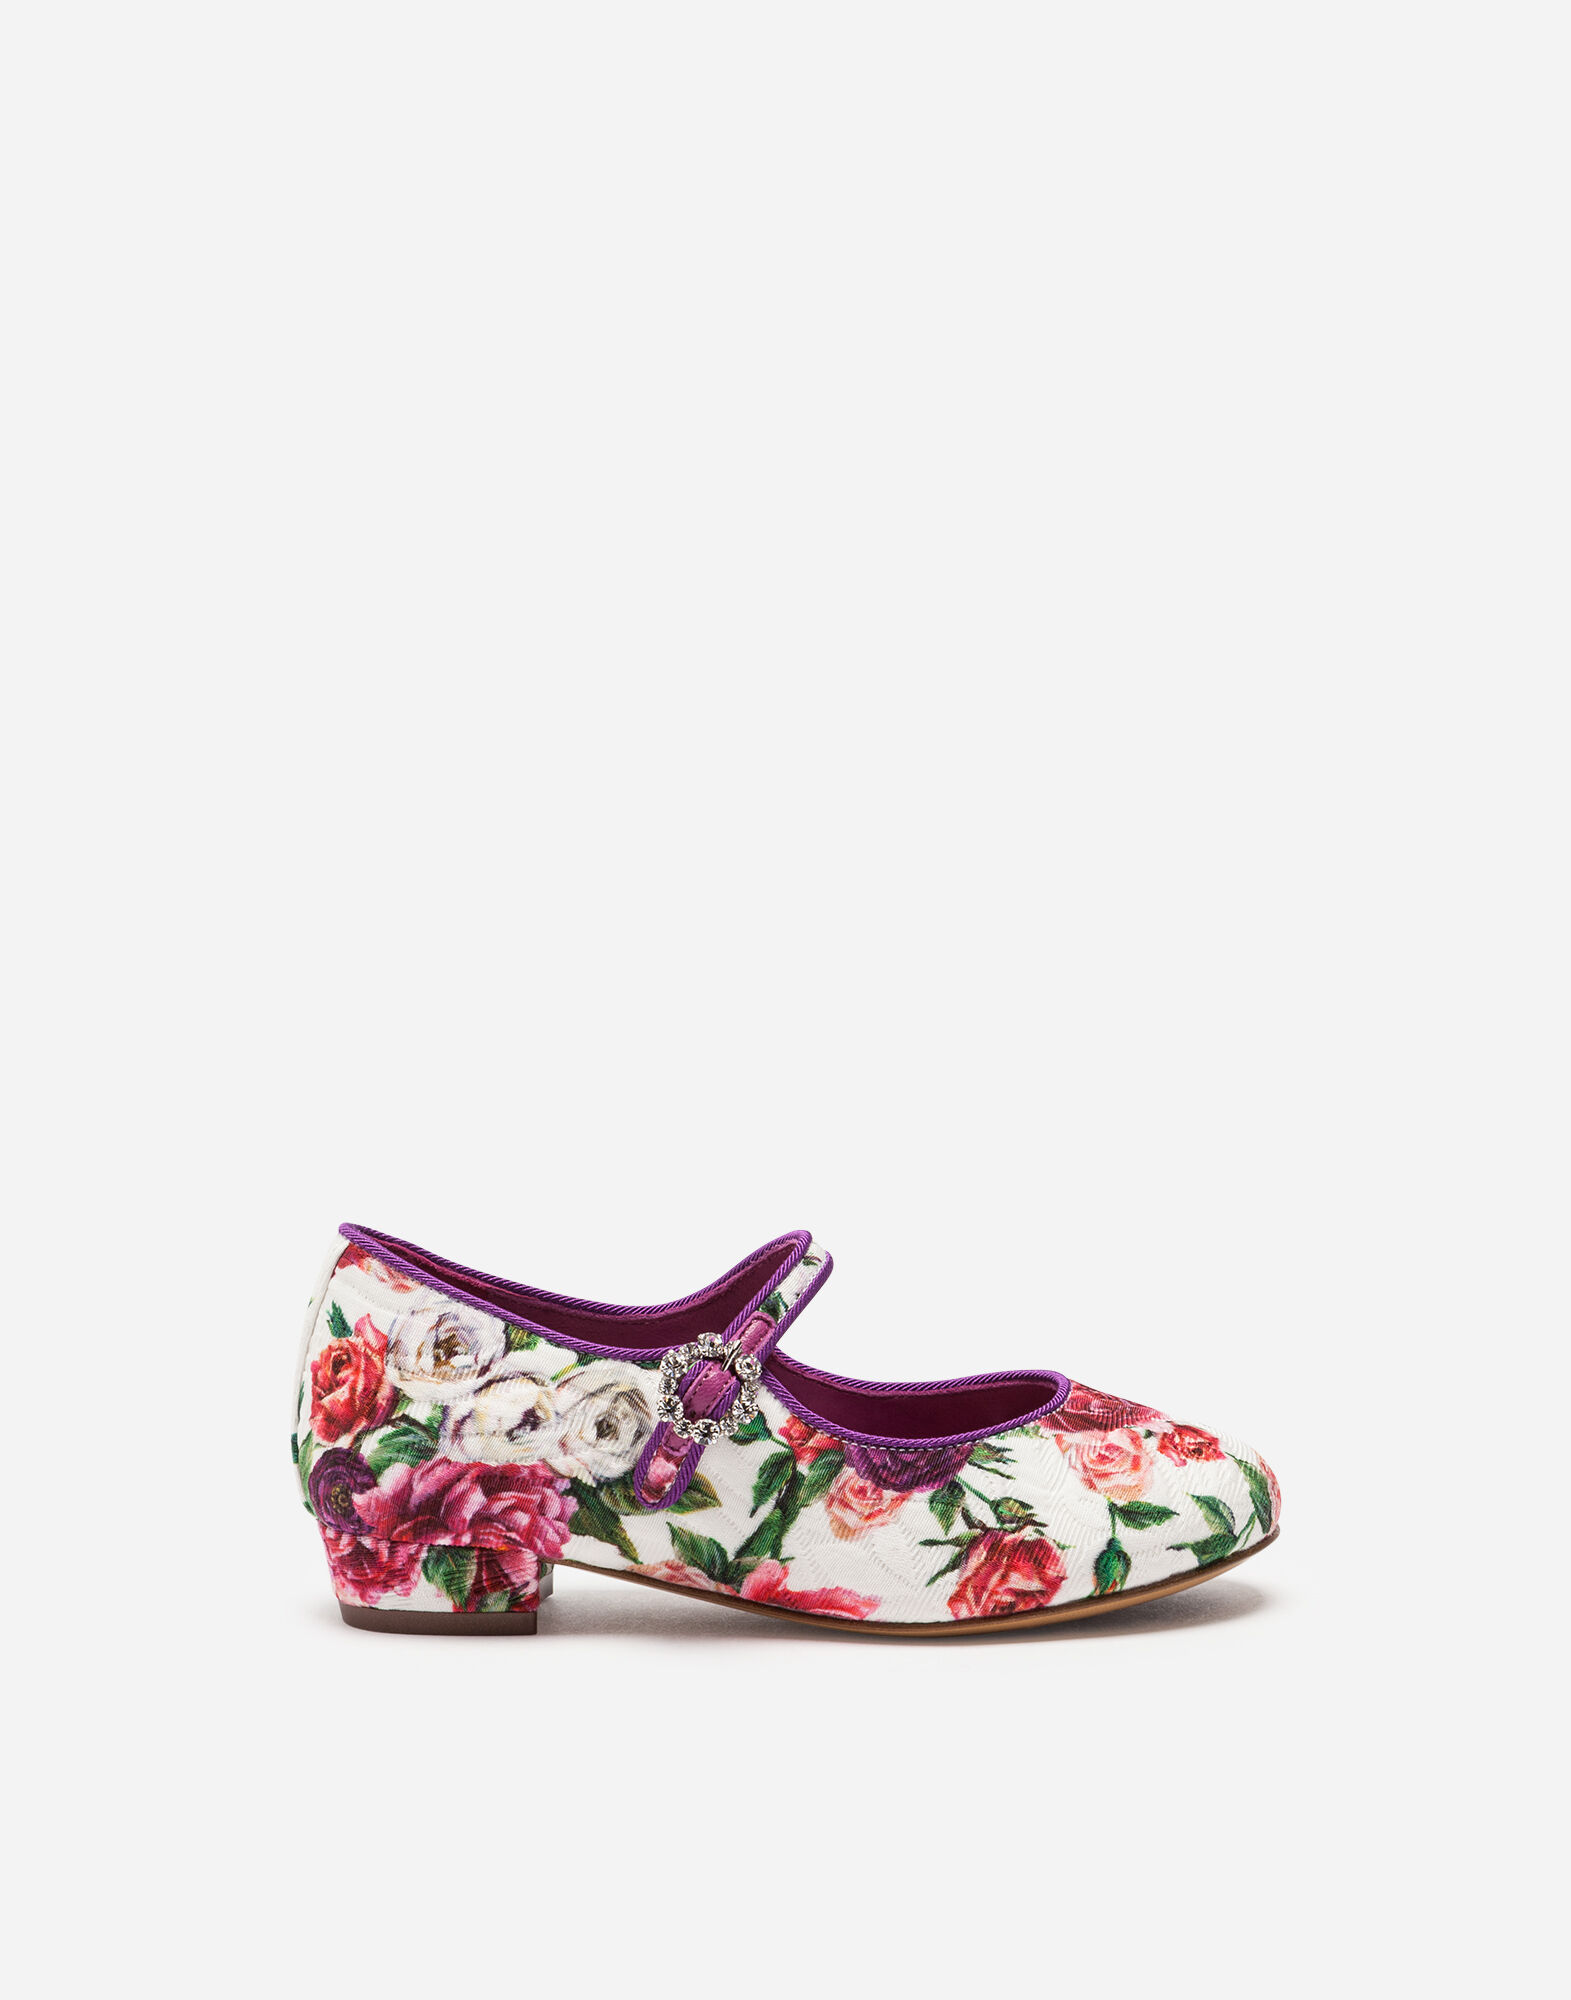 Dolce & Gabbana Mini Me - BROCADE BALLET FLATS WITH BEJEWELED DETAIL Outlet Cheap Quality WPQ5S1UvcL